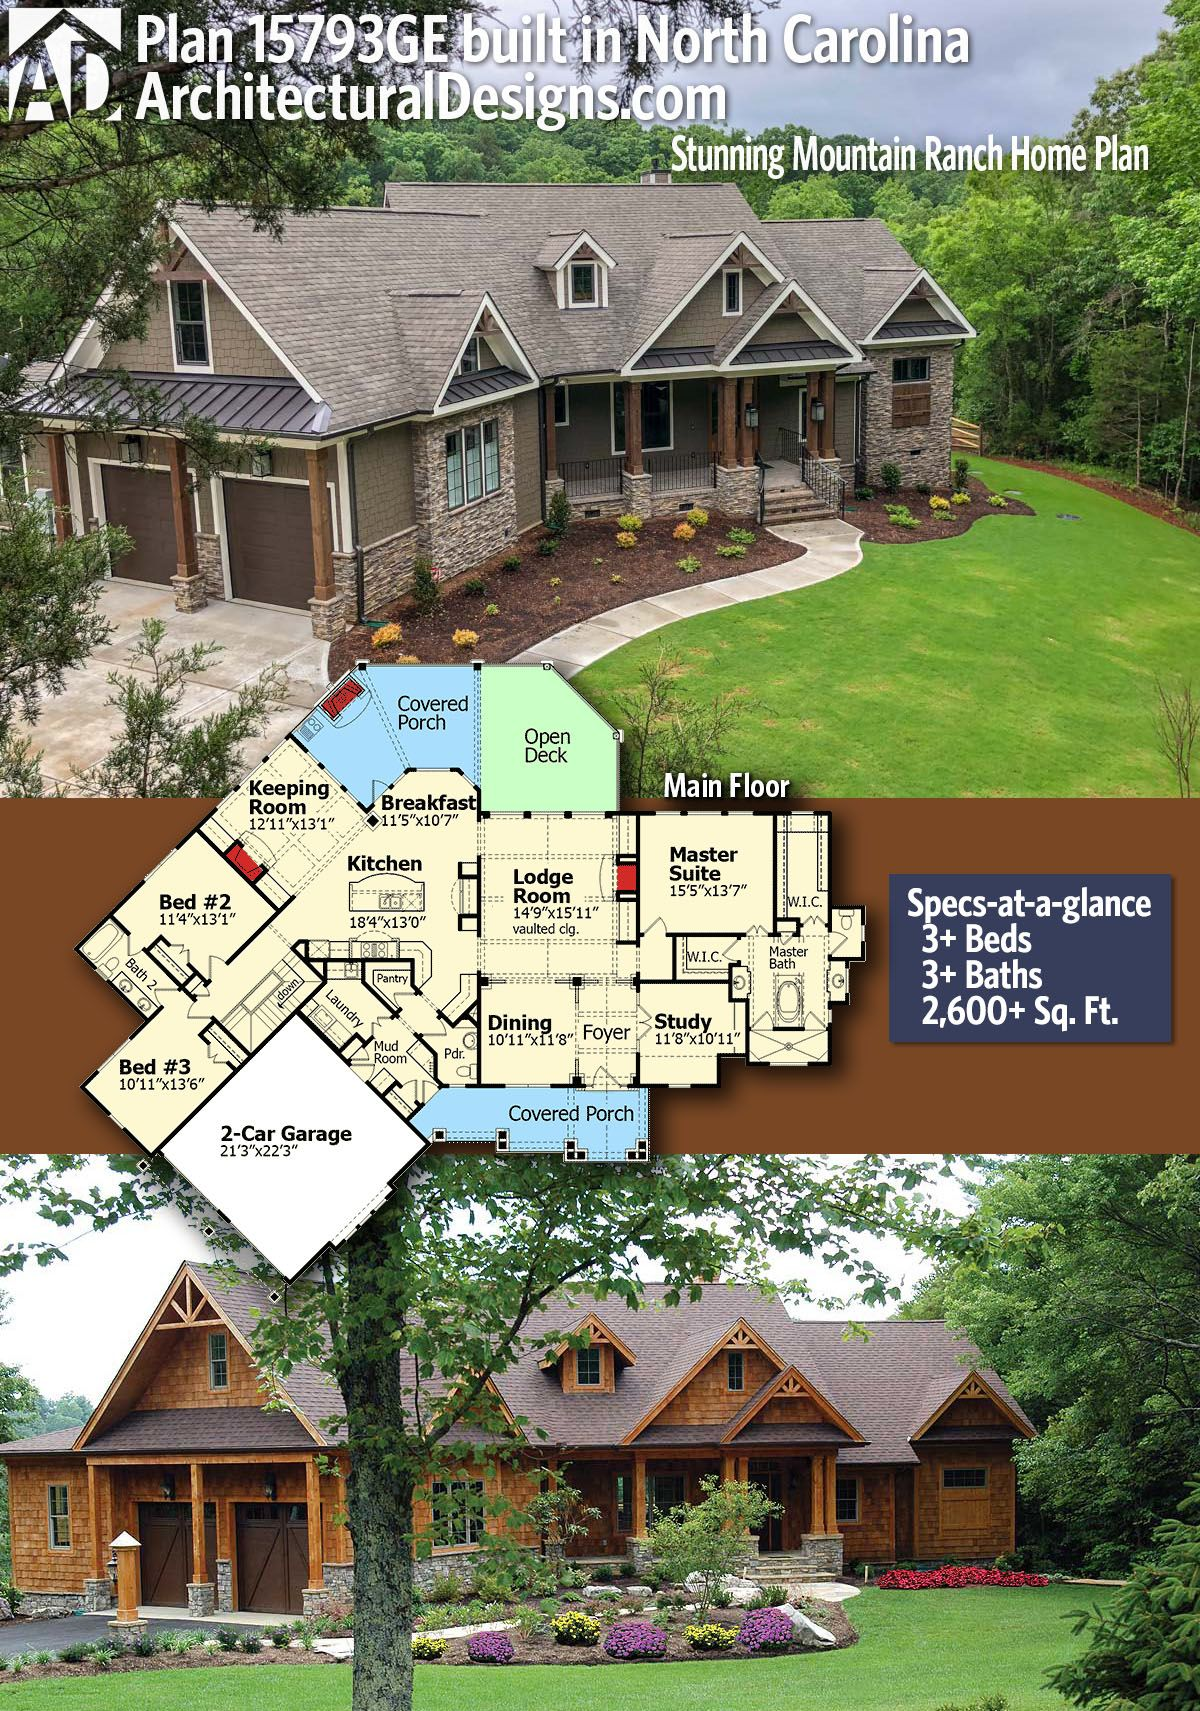 Architectural Designs Client Built House Plan 15793ge Comes To Life In North Carolina 3 Br 2 Ranch House Plans Mountain House Plans Craftsman House Plans